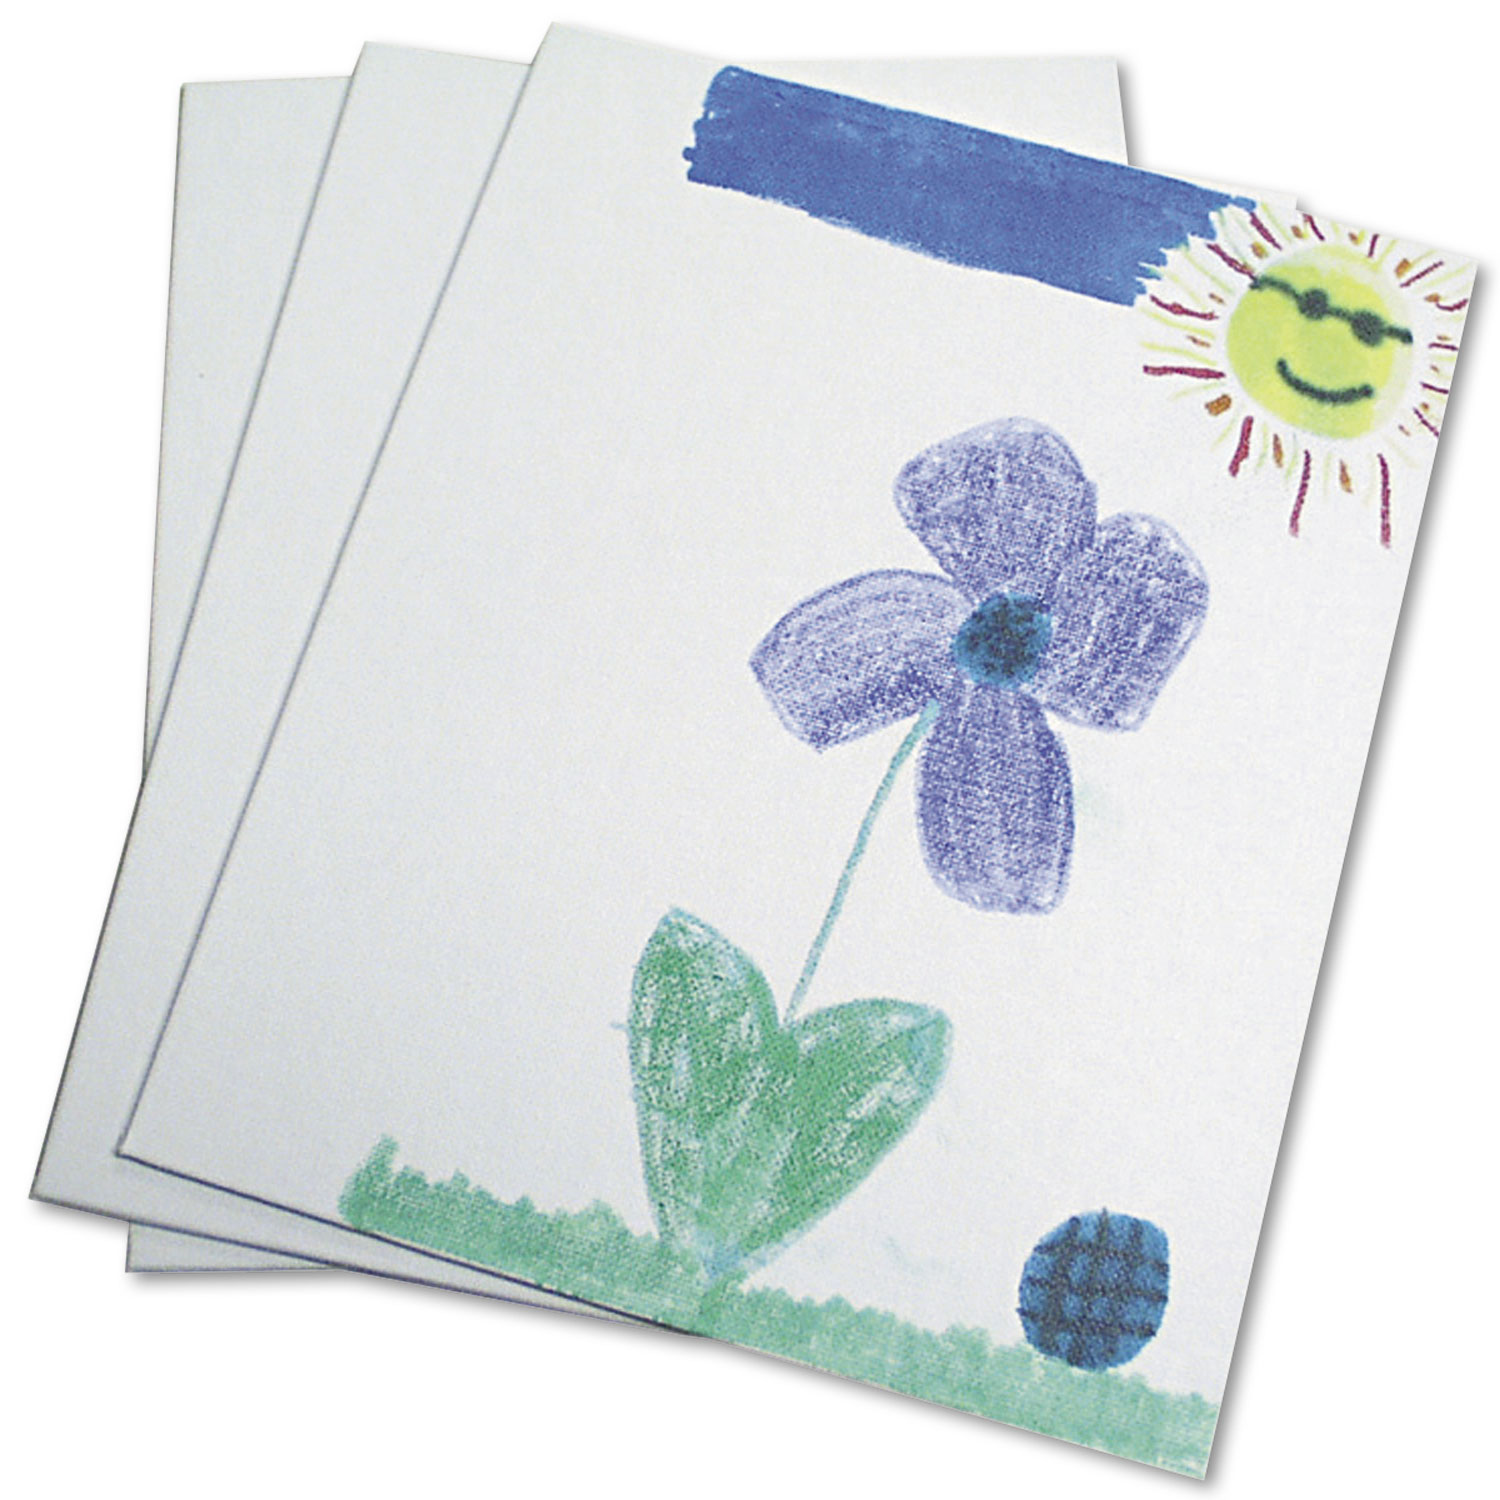 Canvas Panel, 9 x 12 x 0.13, White, 3/Pack